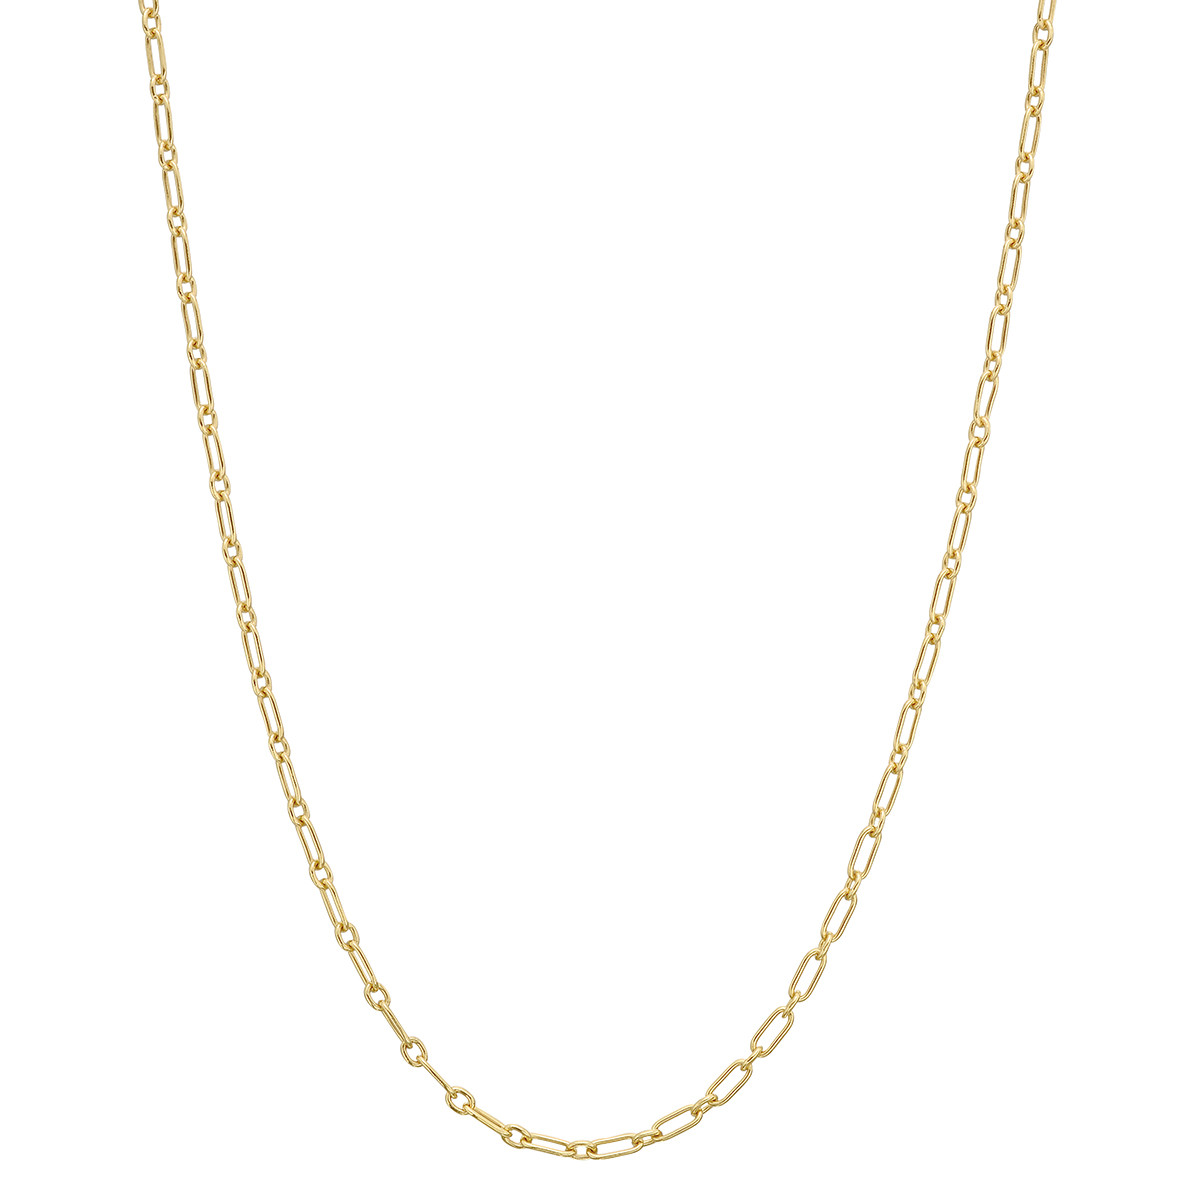 "14k Yellow Gold Flat Oval Link Chain Necklace (16"")"